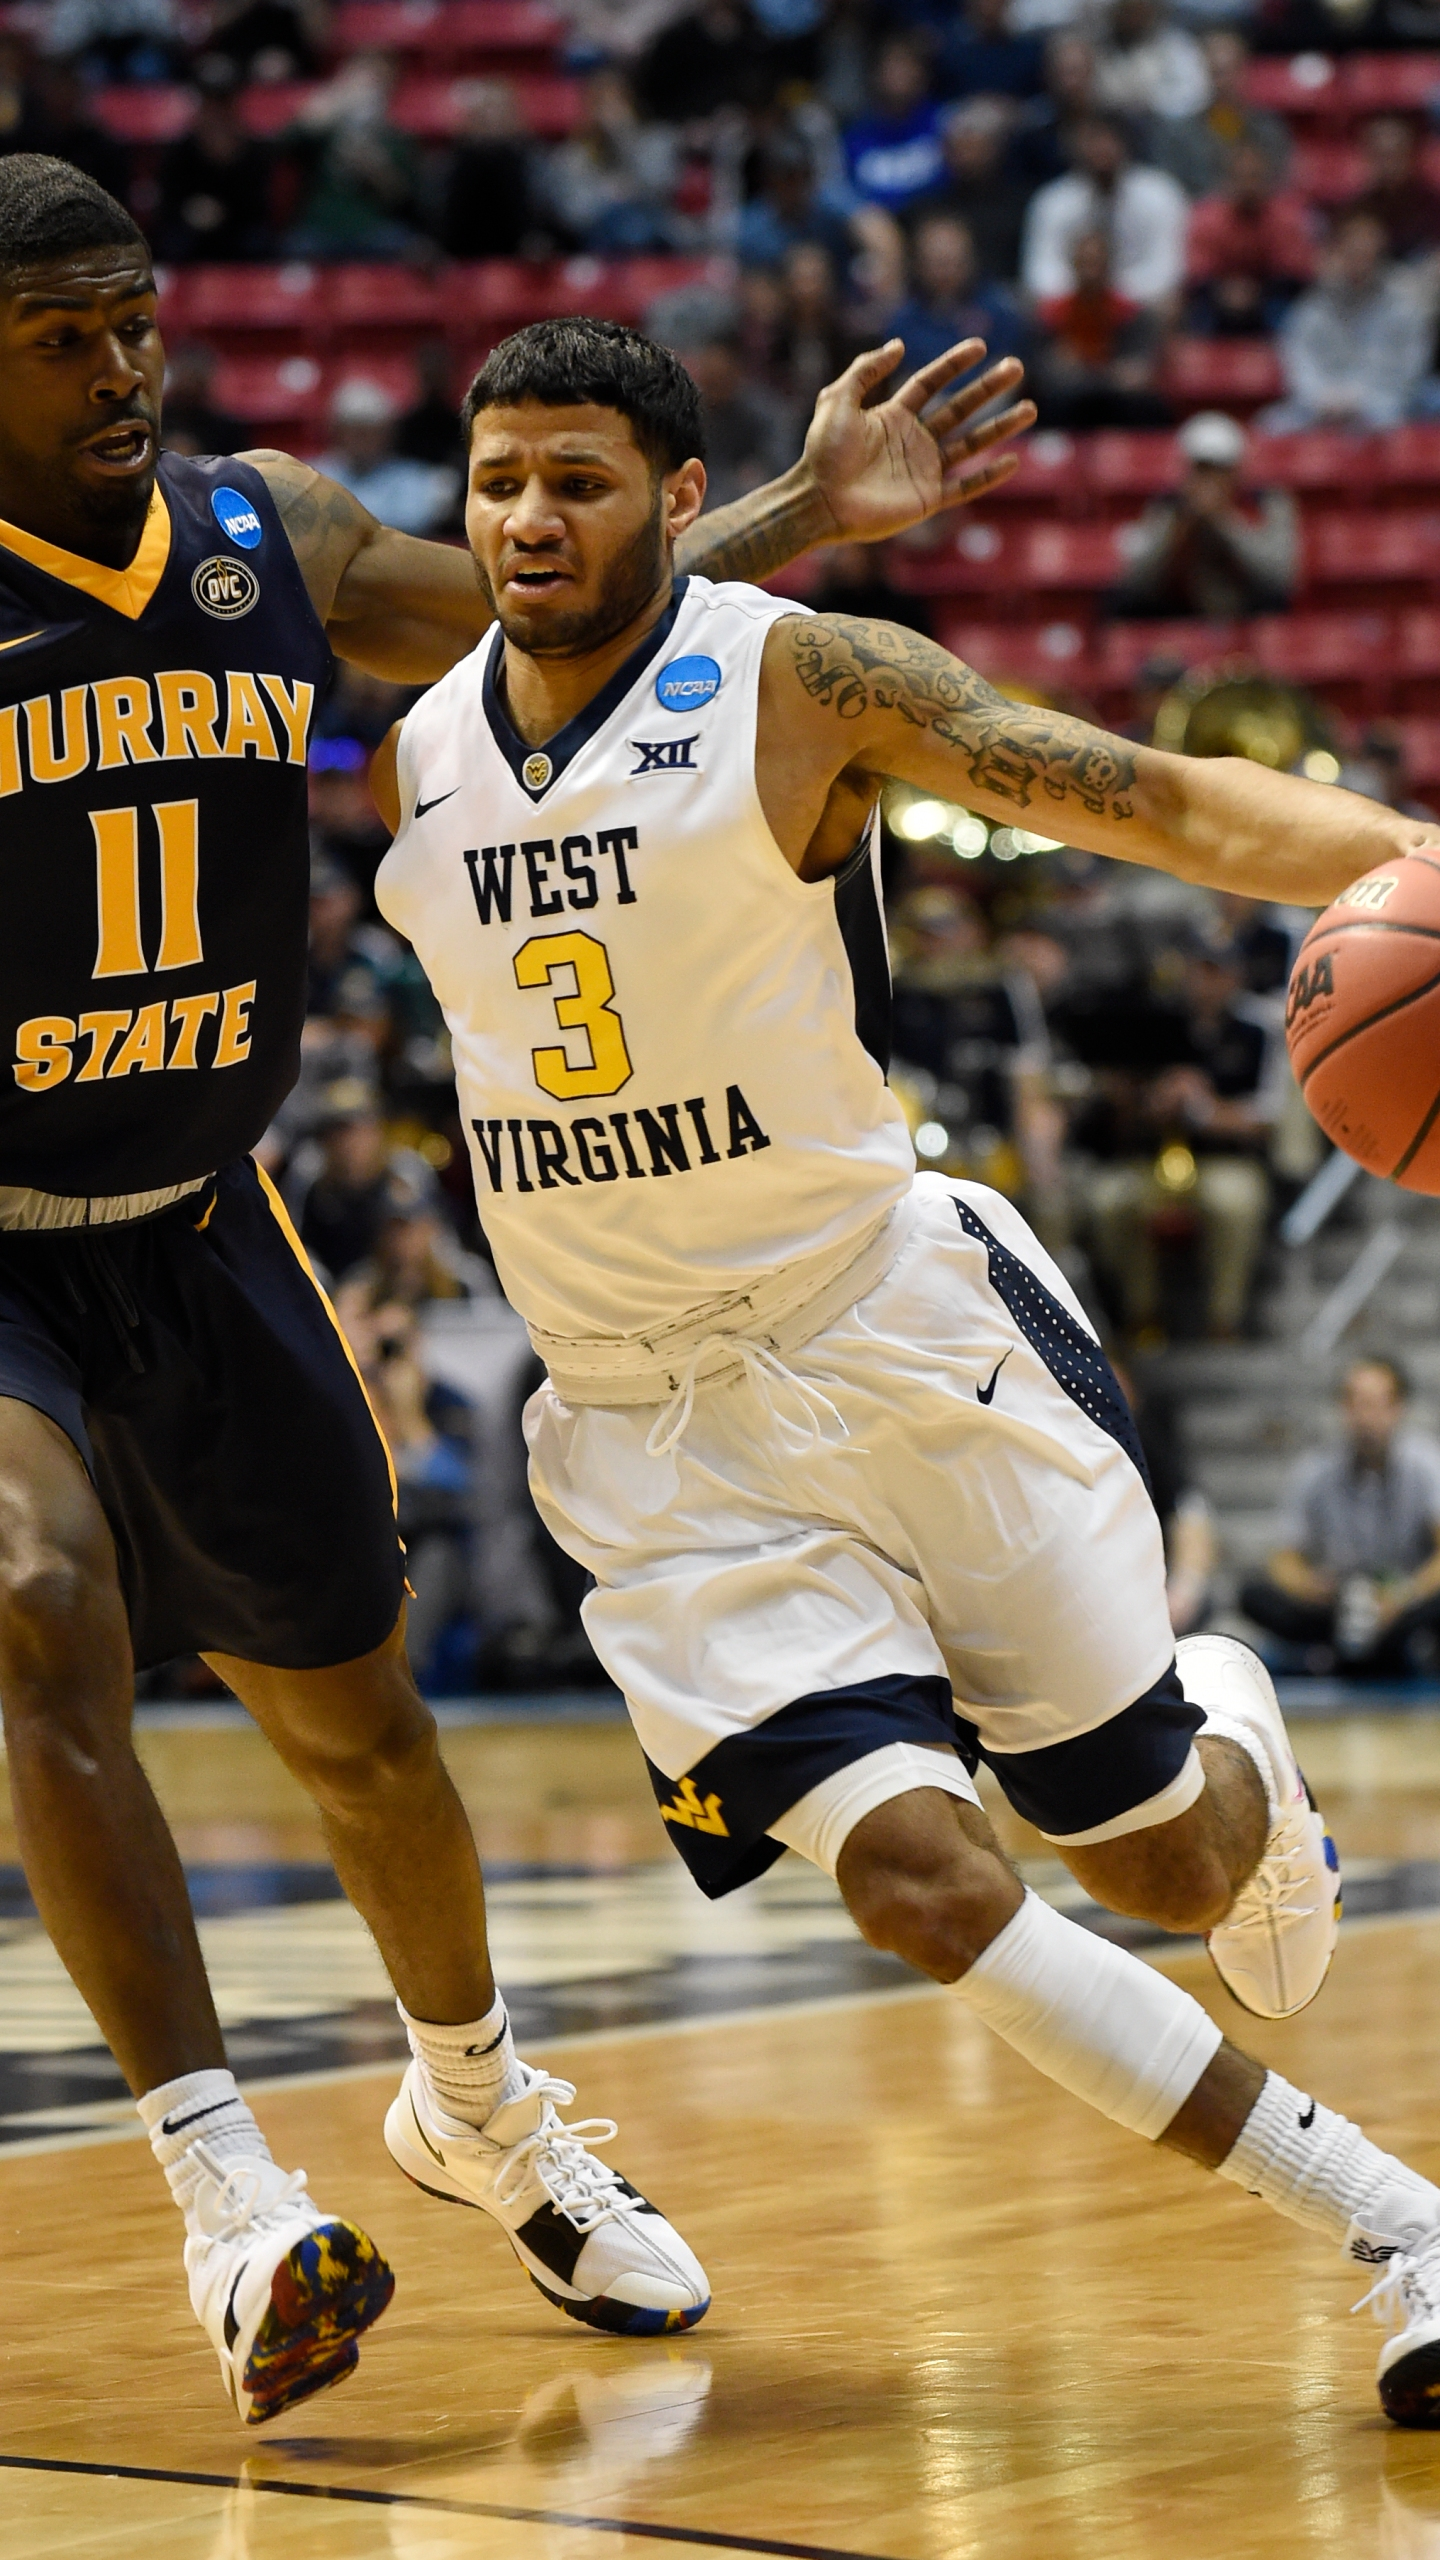 NCAA_Murray_St_West_Virginia_Basketball_64189-159532.jpg38655481